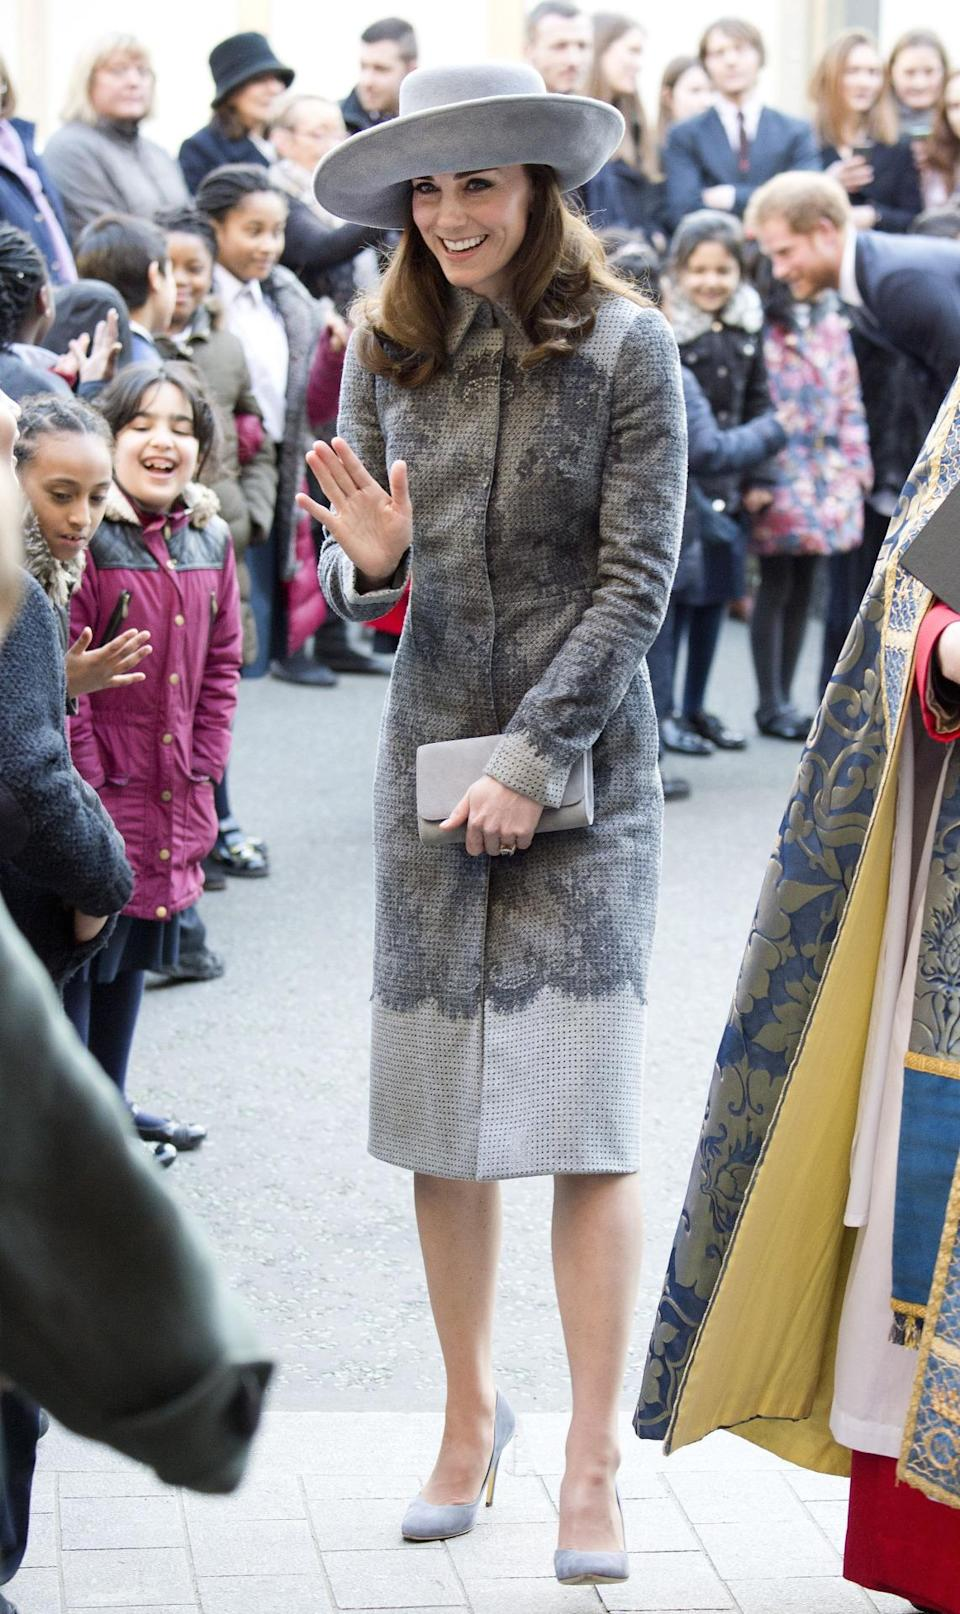 <p>London-based designer Erdem was the man behind Kate's lacy grey coat. For a service at Westminster Abbey, the Duchess accessorised with suede Rupert Sanderson heels and a wide-brimmed hat by John Boyd. </p><p><i>[Photo: PA]</i></p>